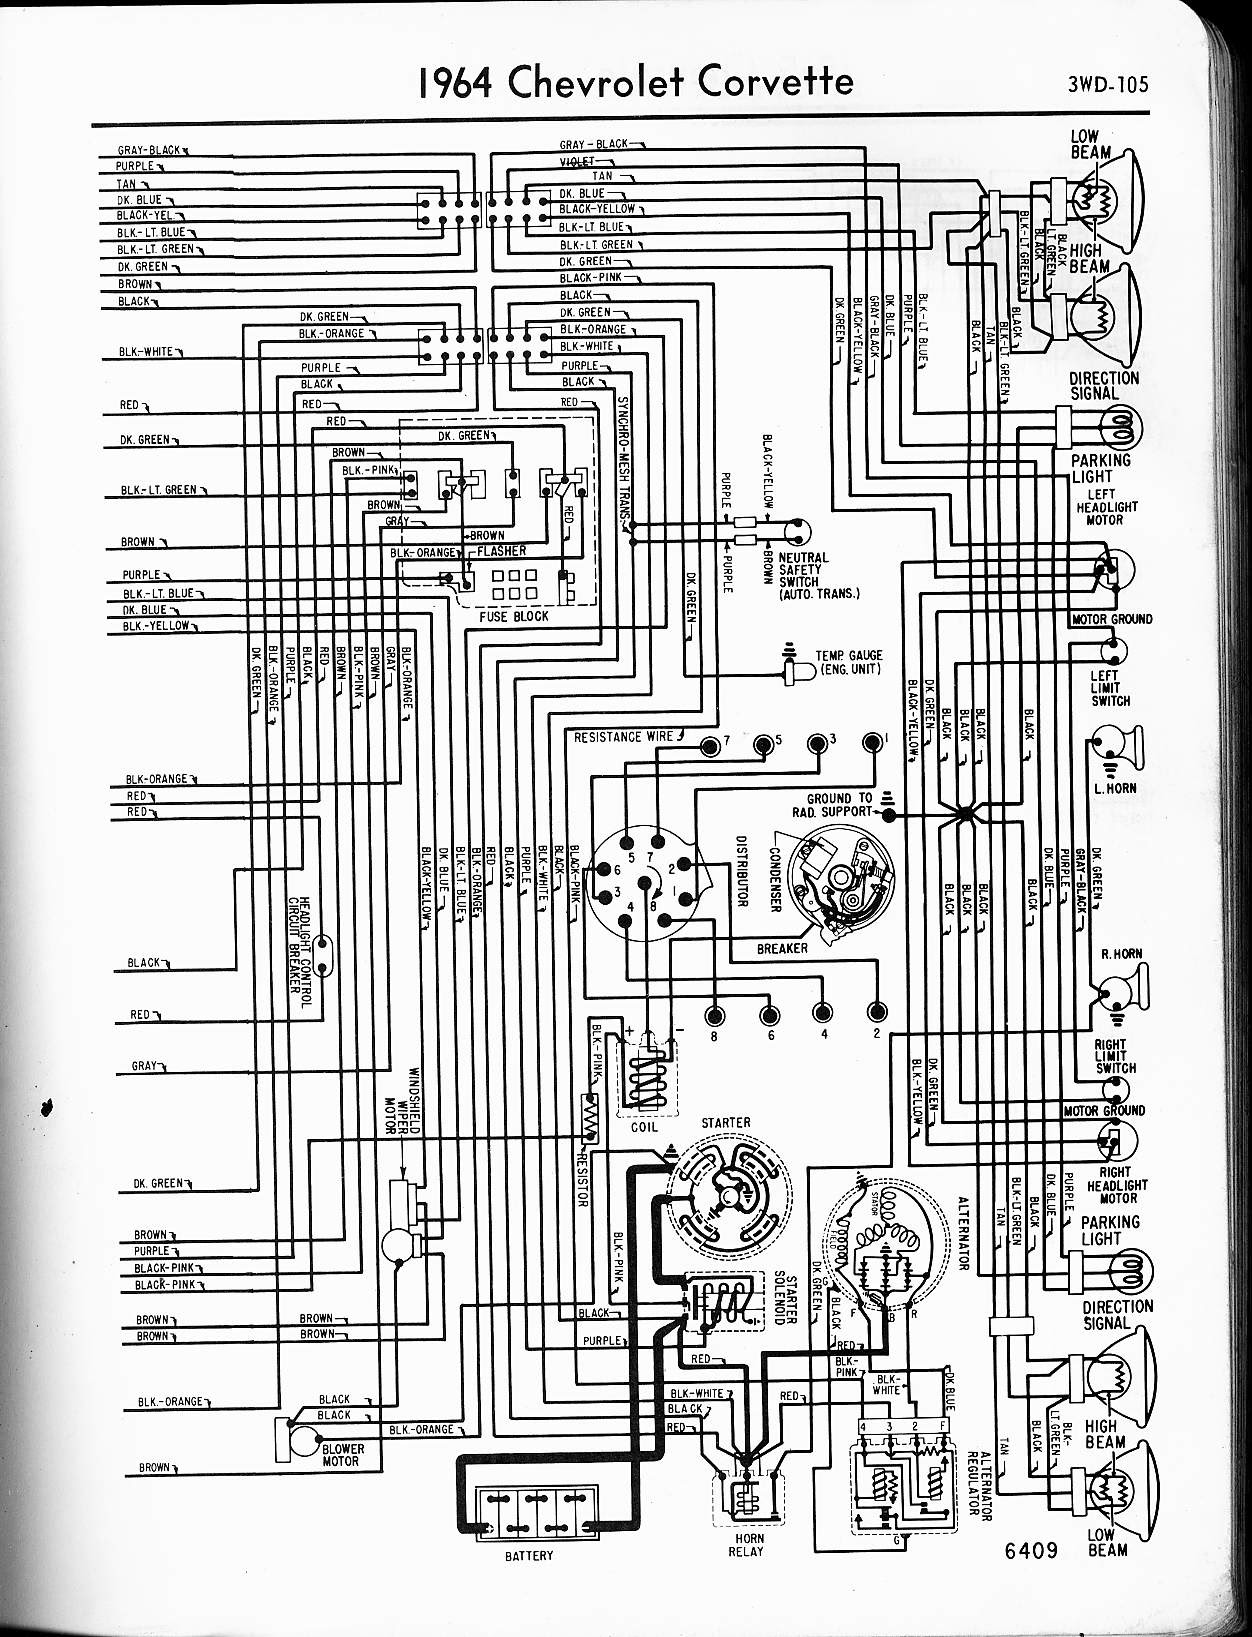 citroen berlingo wiring diagram pdf citroen c5 2002 wiring diagram wiring diagram data  citroen c5 2002 wiring diagram wiring